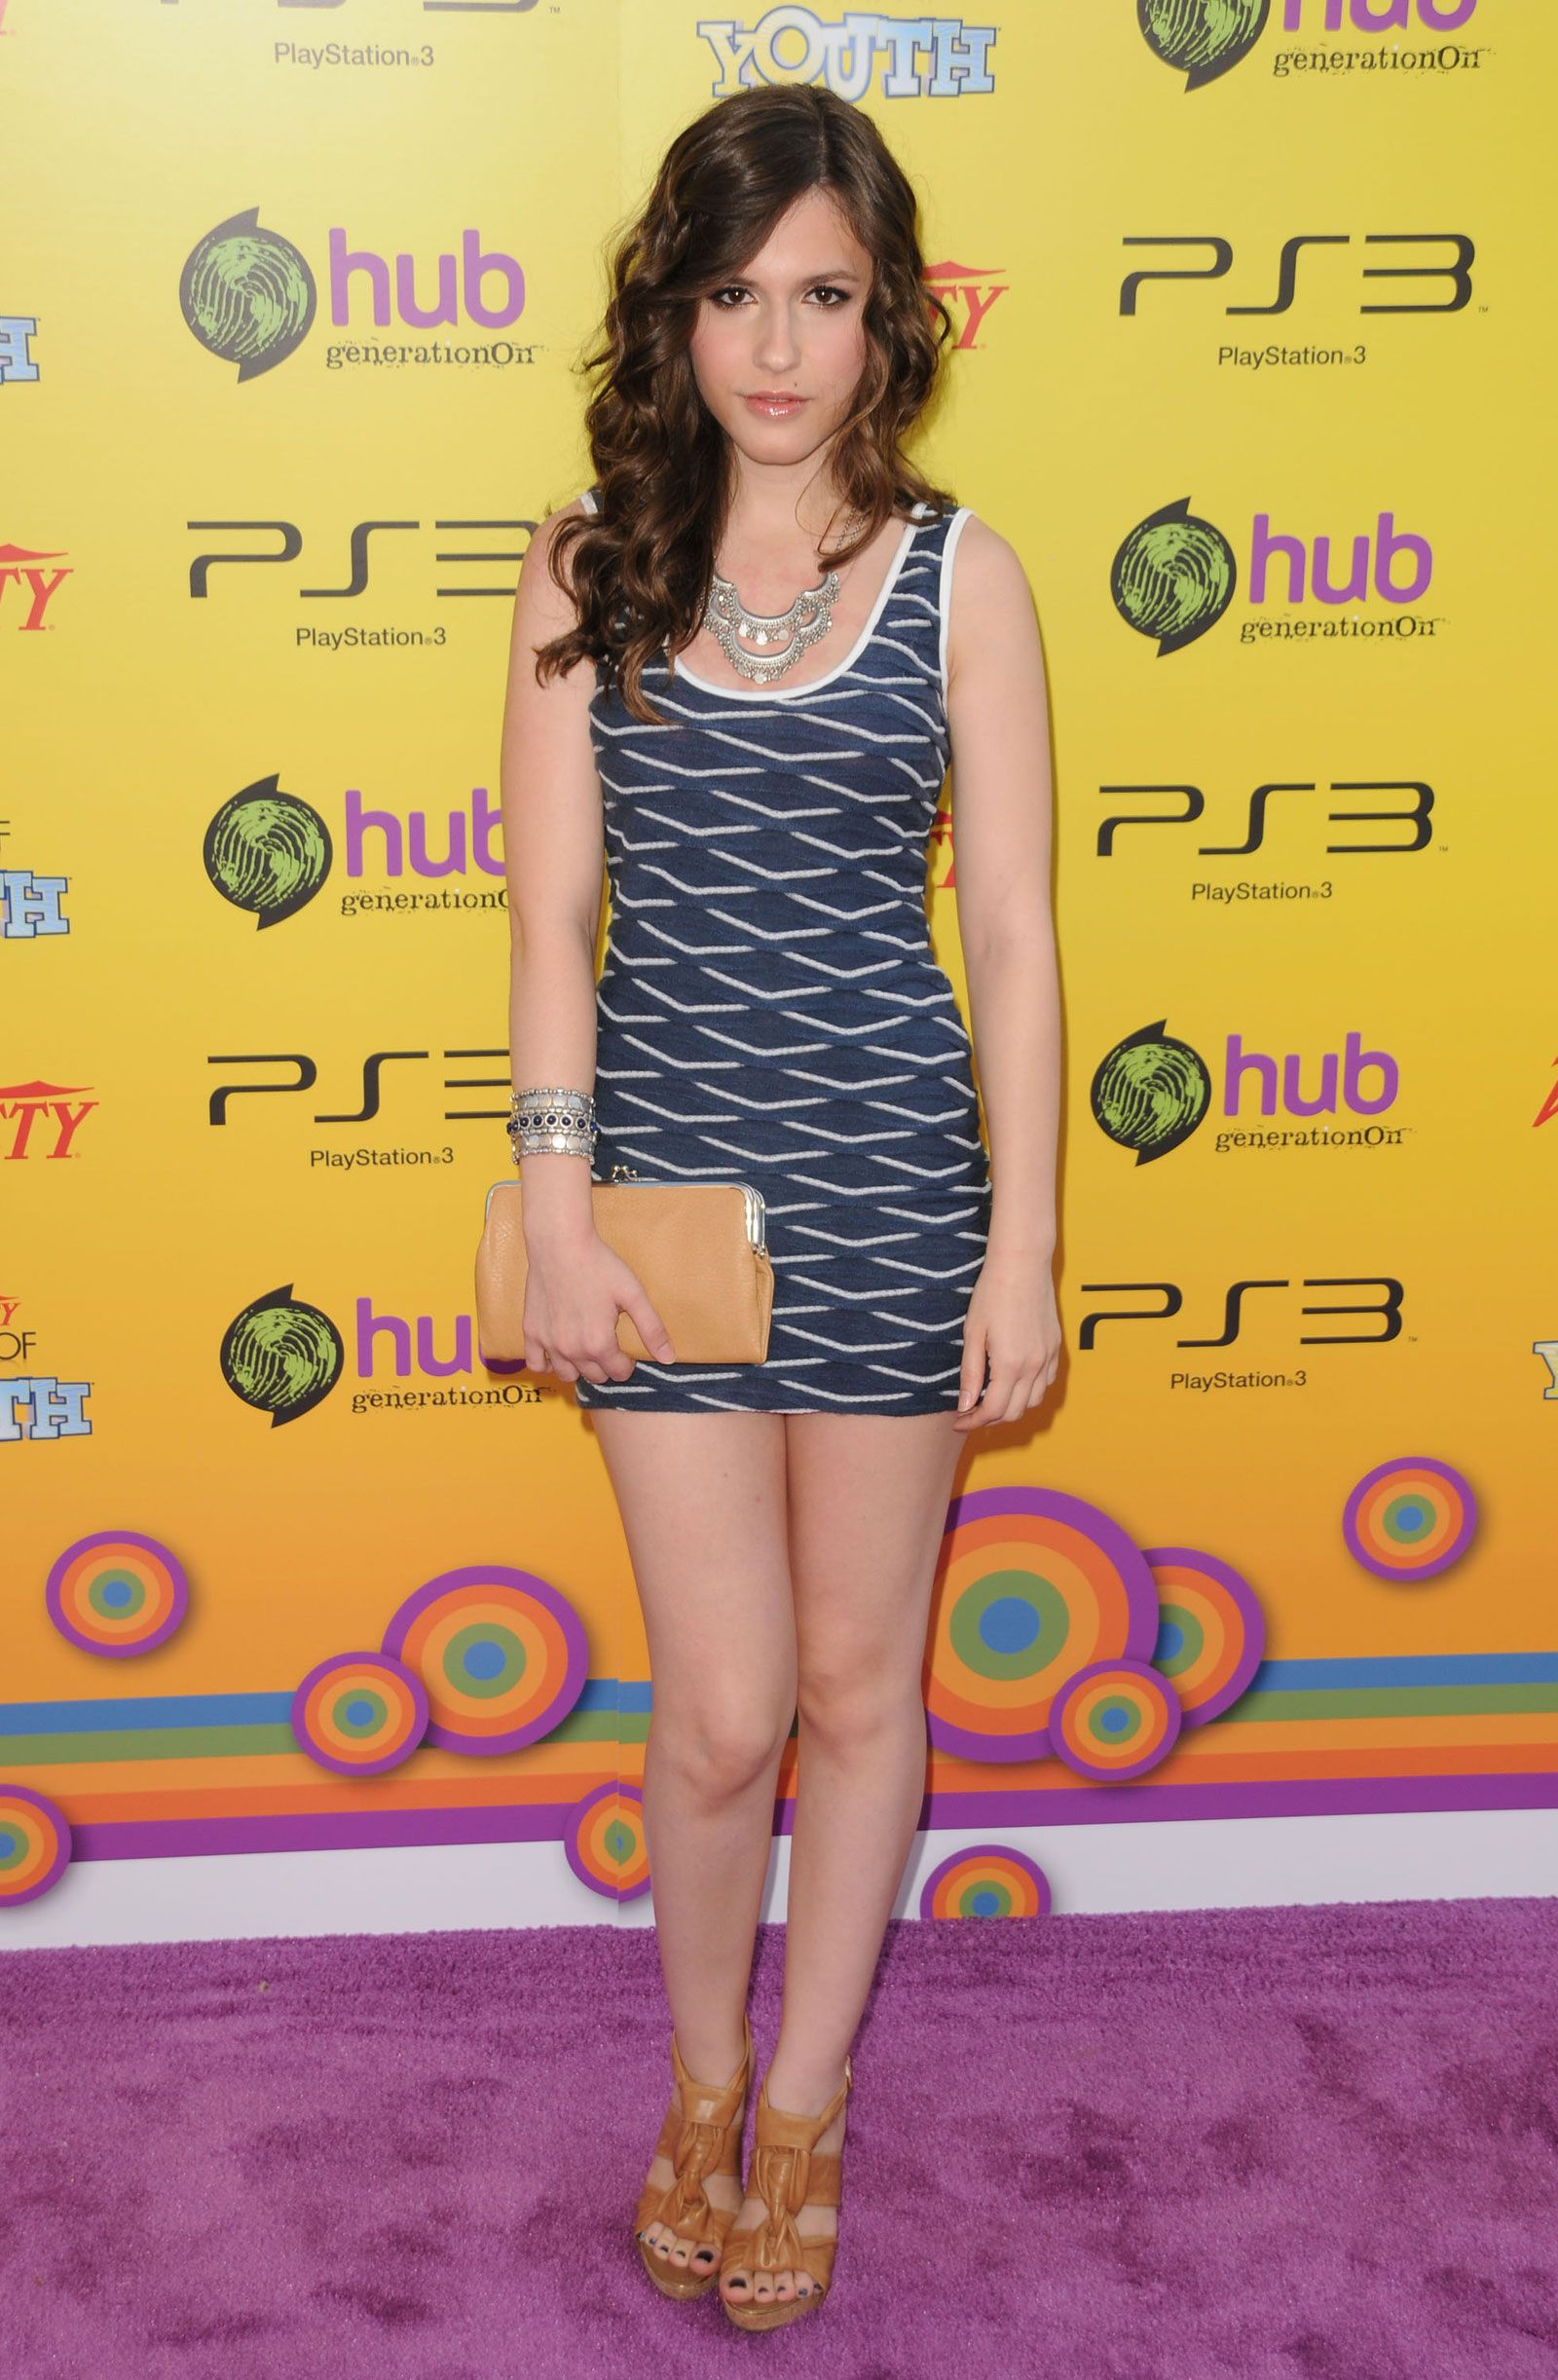 2019 Erin Sanders nudes (97 photos), Ass, Cleavage, Boobs, swimsuit 2015